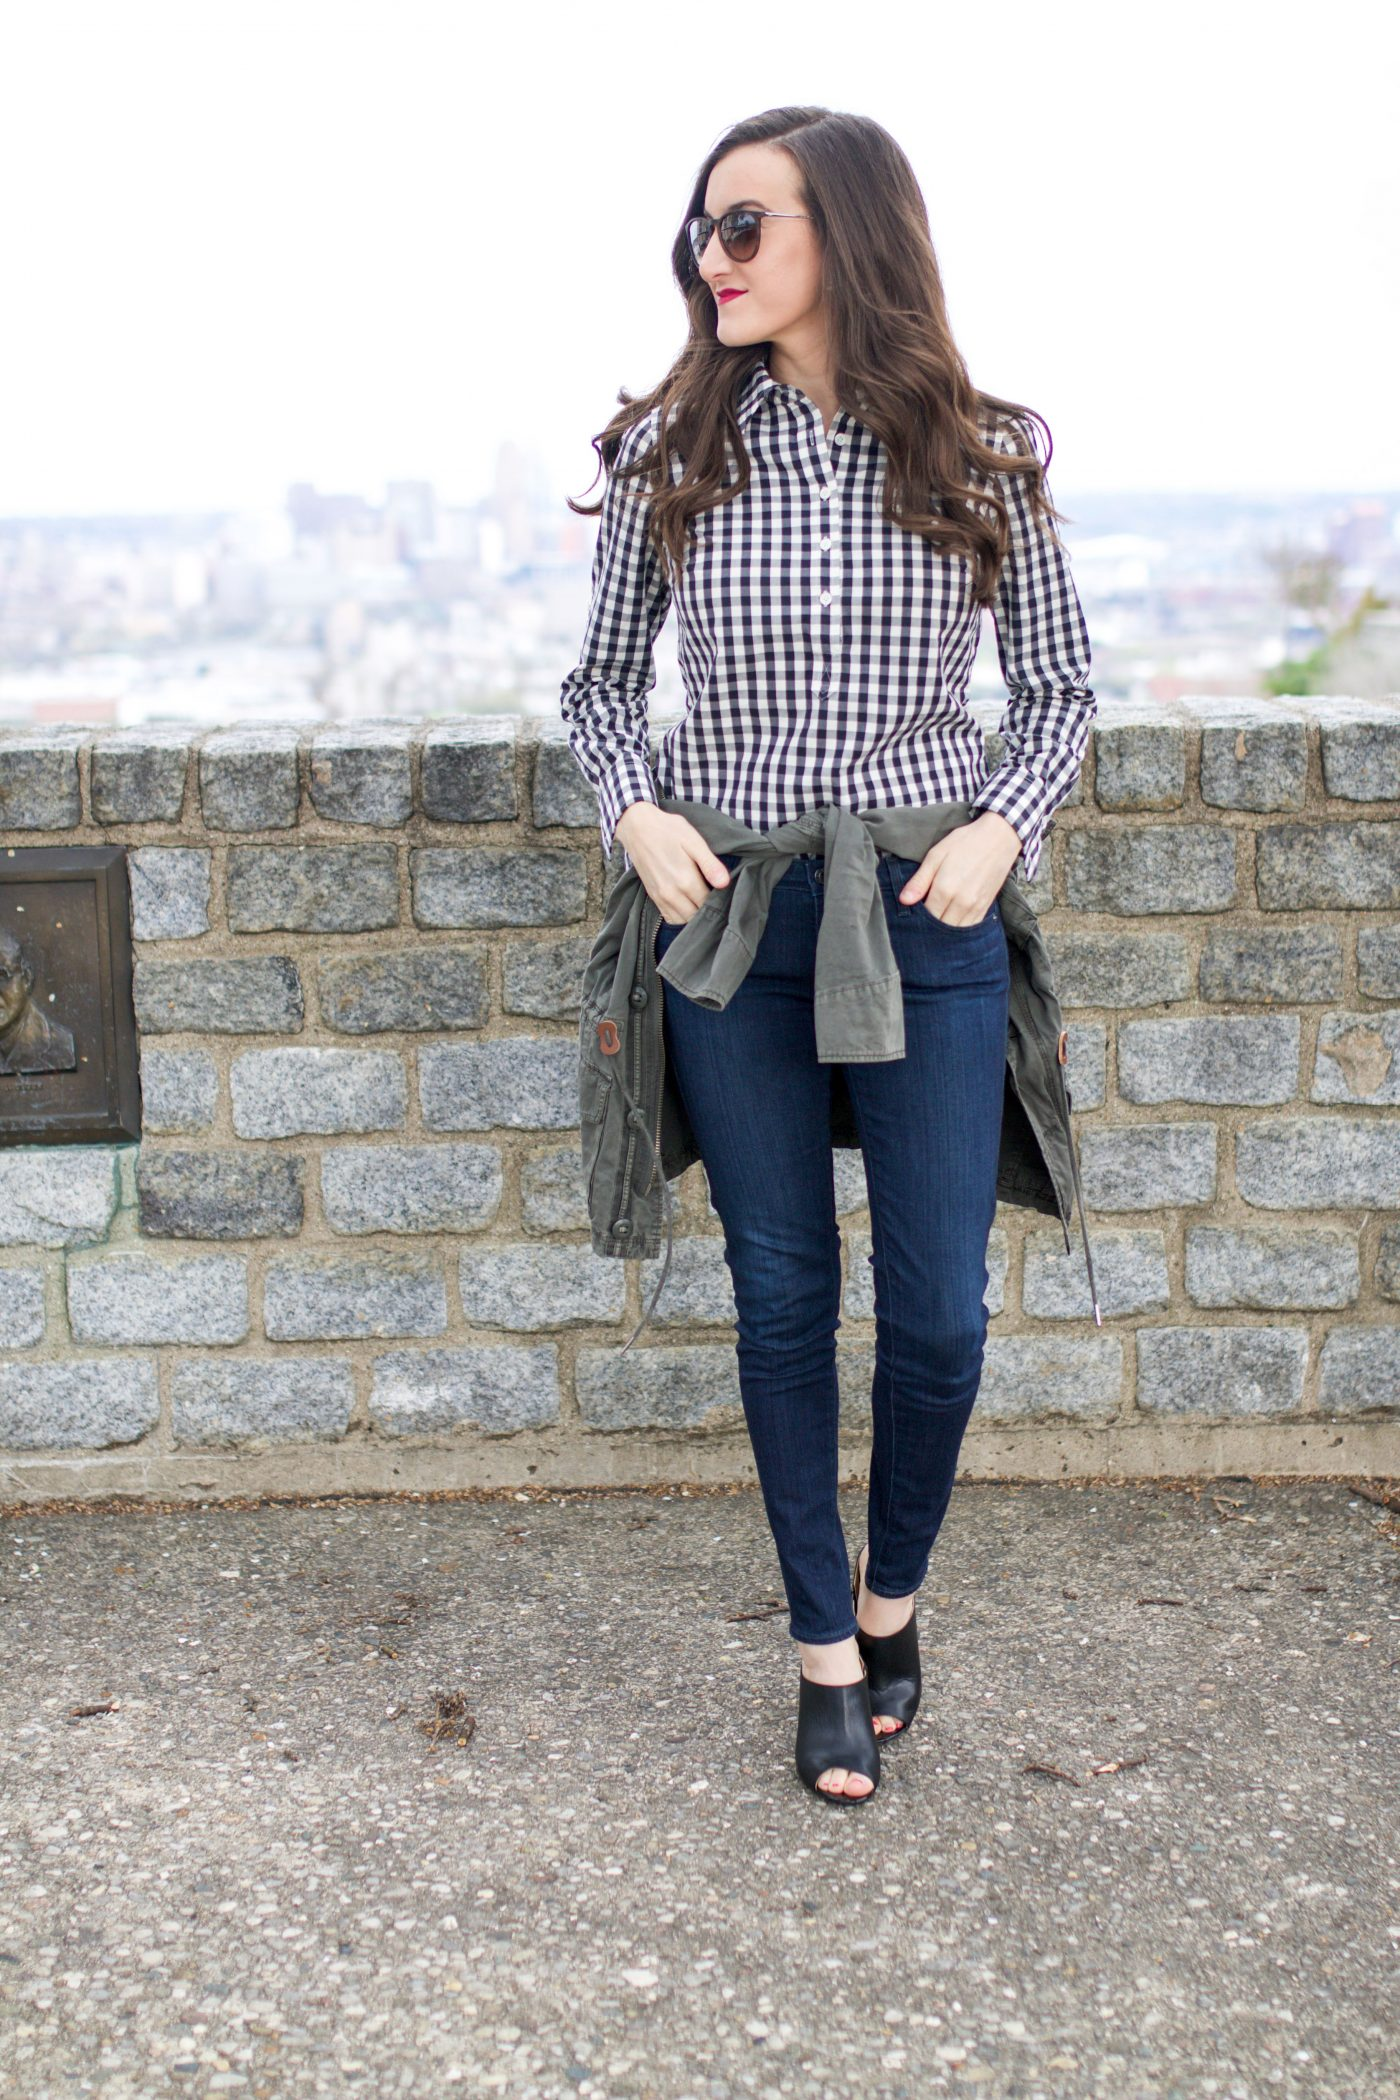 Gingham Shirt Outfit Ideas